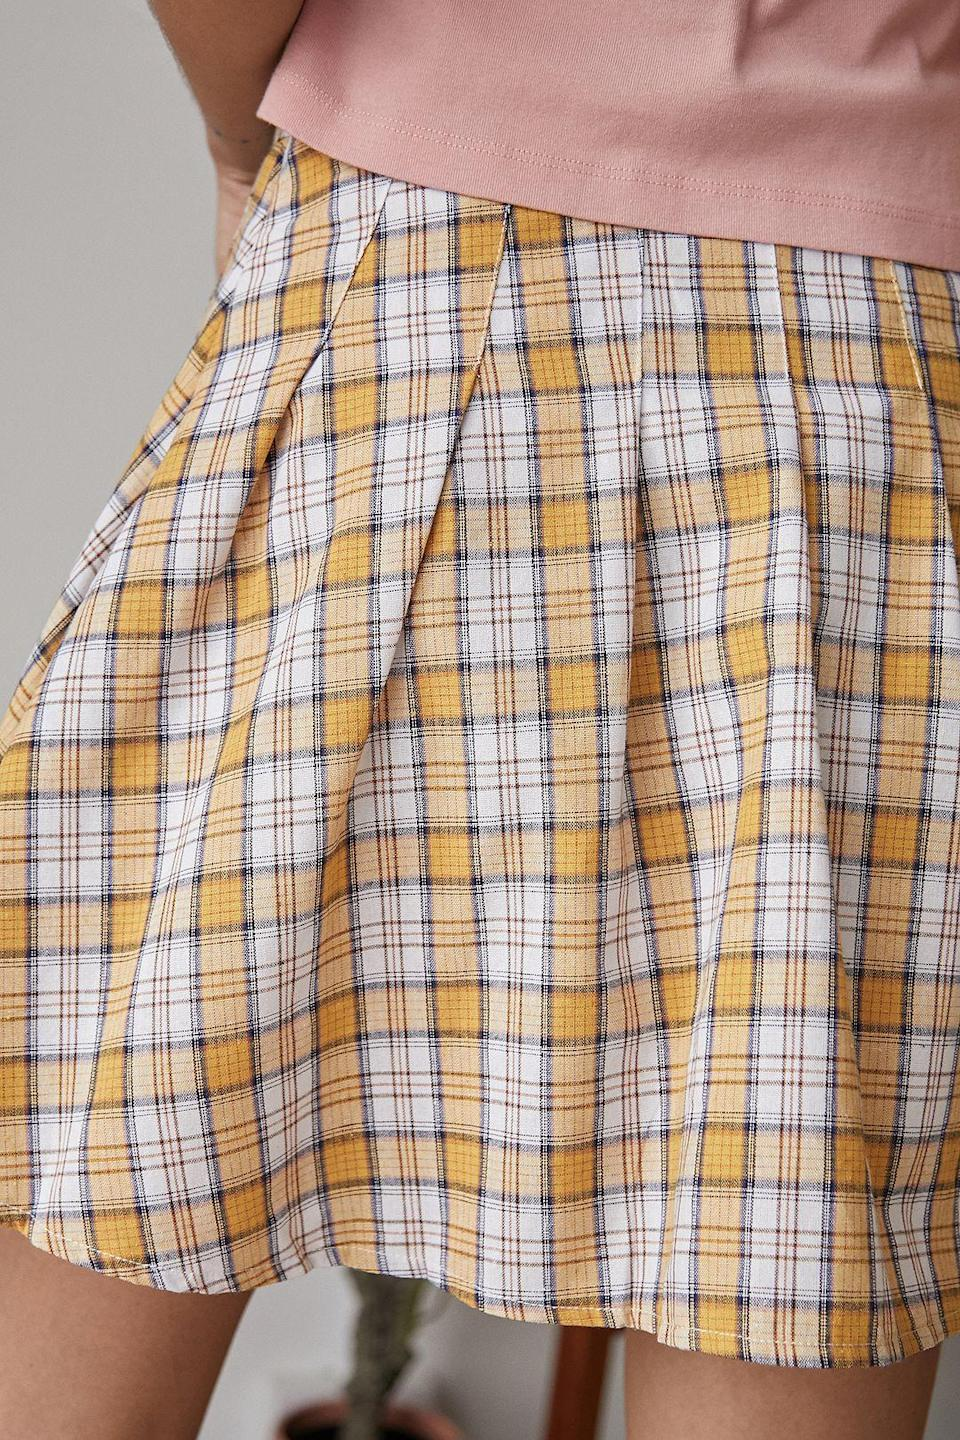 """<p><a href=""""https://www.urbanoutfitters.com/fr-fr/shop/daisy-street-check-pleated-tennis-skirt?category=SEARCHRESULTS&color=072&searchparams=q%3Dcarreaux&type=REGULAR&quantity=1"""" rel=""""nofollow noopener"""" target=""""_blank"""" data-ylk=""""slk:Acheter chez Urban Outfitters - 29 €"""" class=""""link rapid-noclick-resp"""">Acheter chez Urban Outfitters - 29 €</a></p>"""